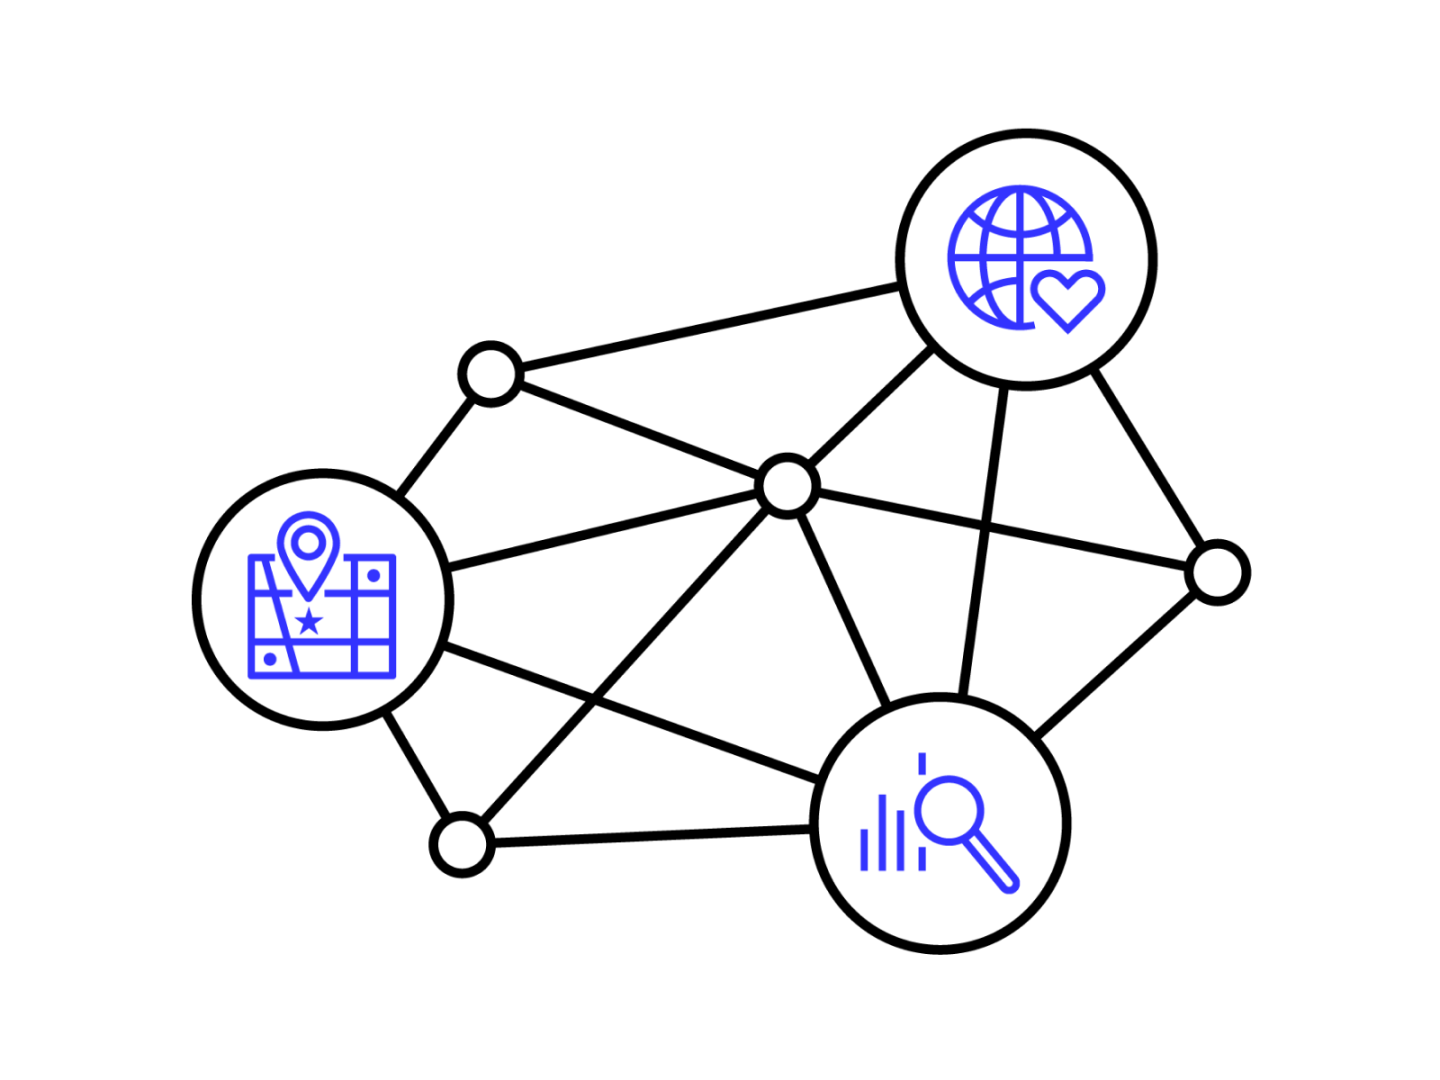 An illustration for the Foursquare Technical Womxn group showing icons for charity, data and location connected together with a data structure.